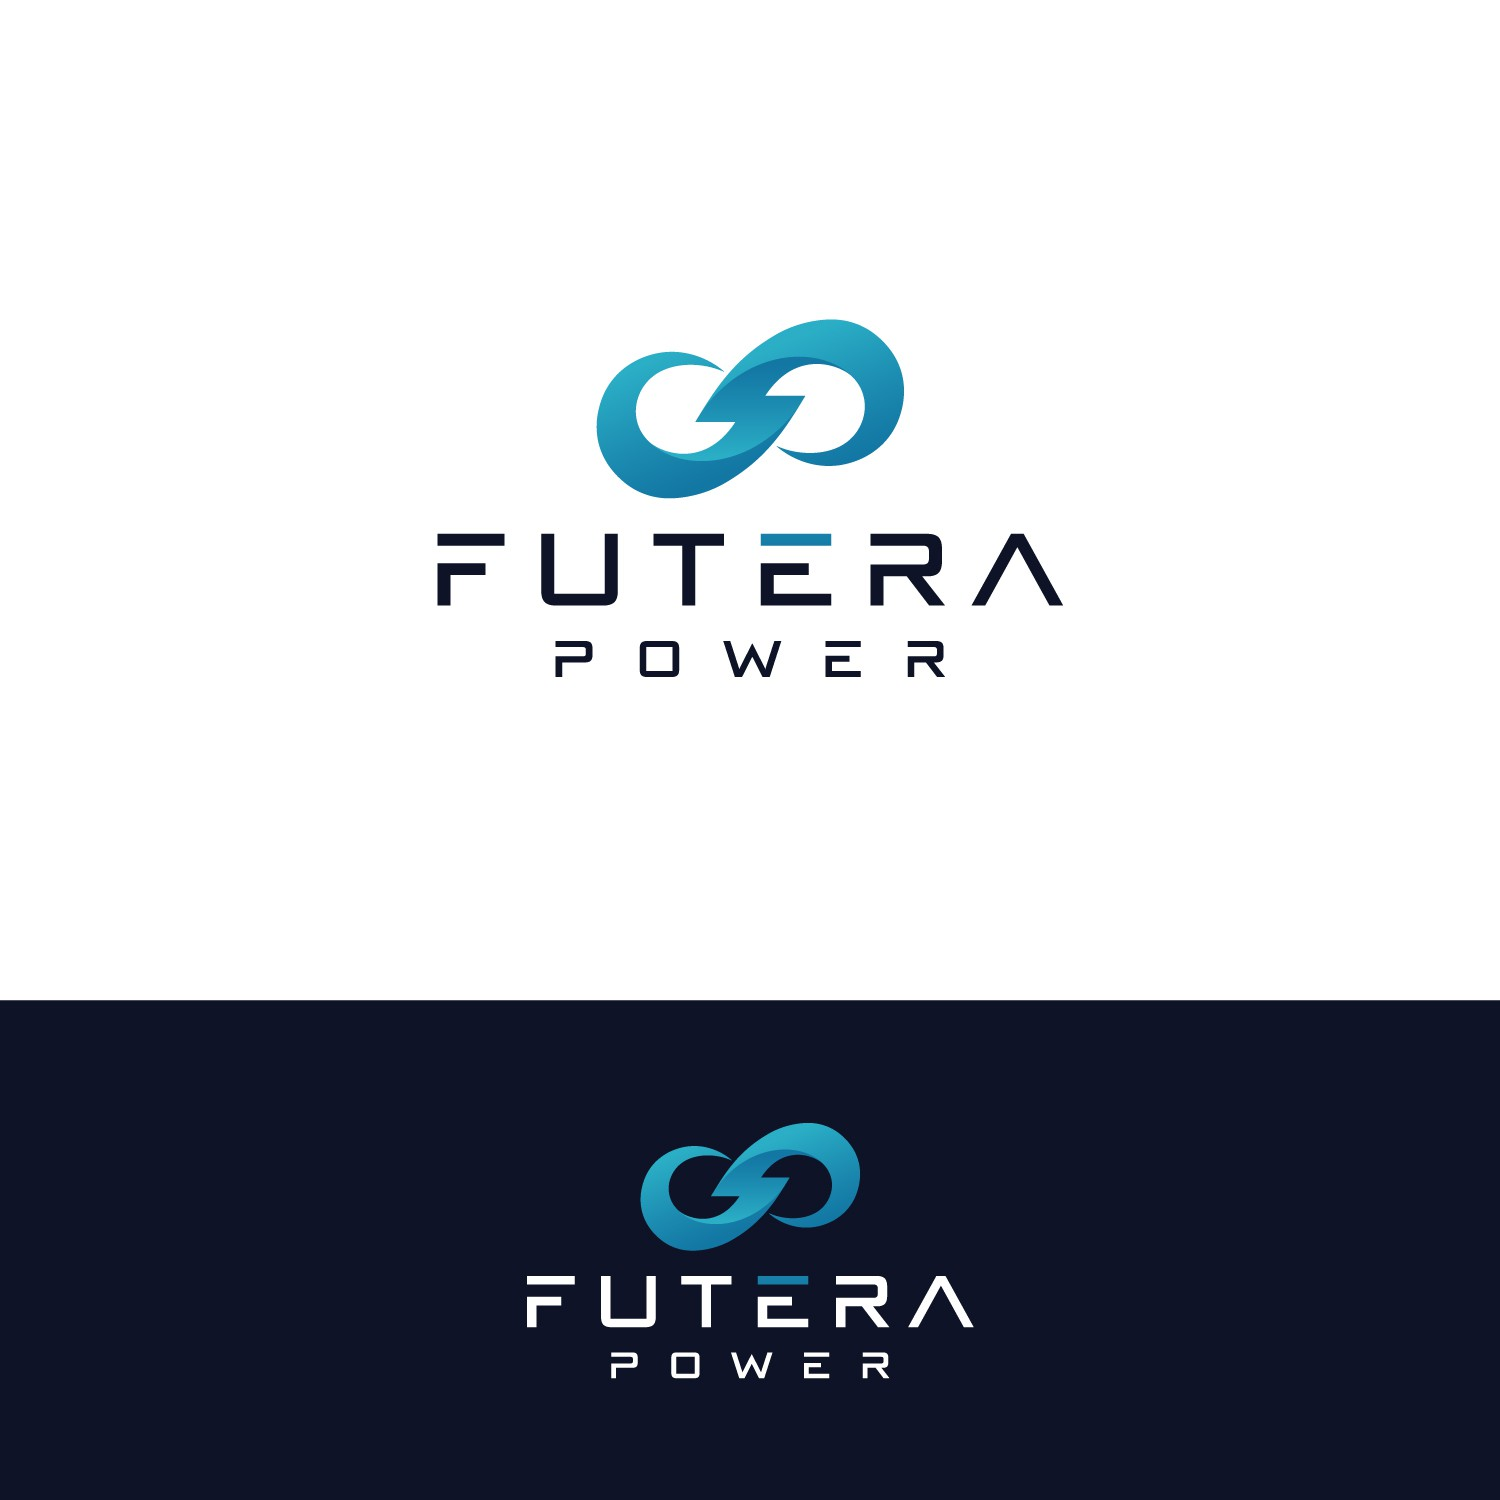 Futera Energy - creating green energy options from legacy energy assets